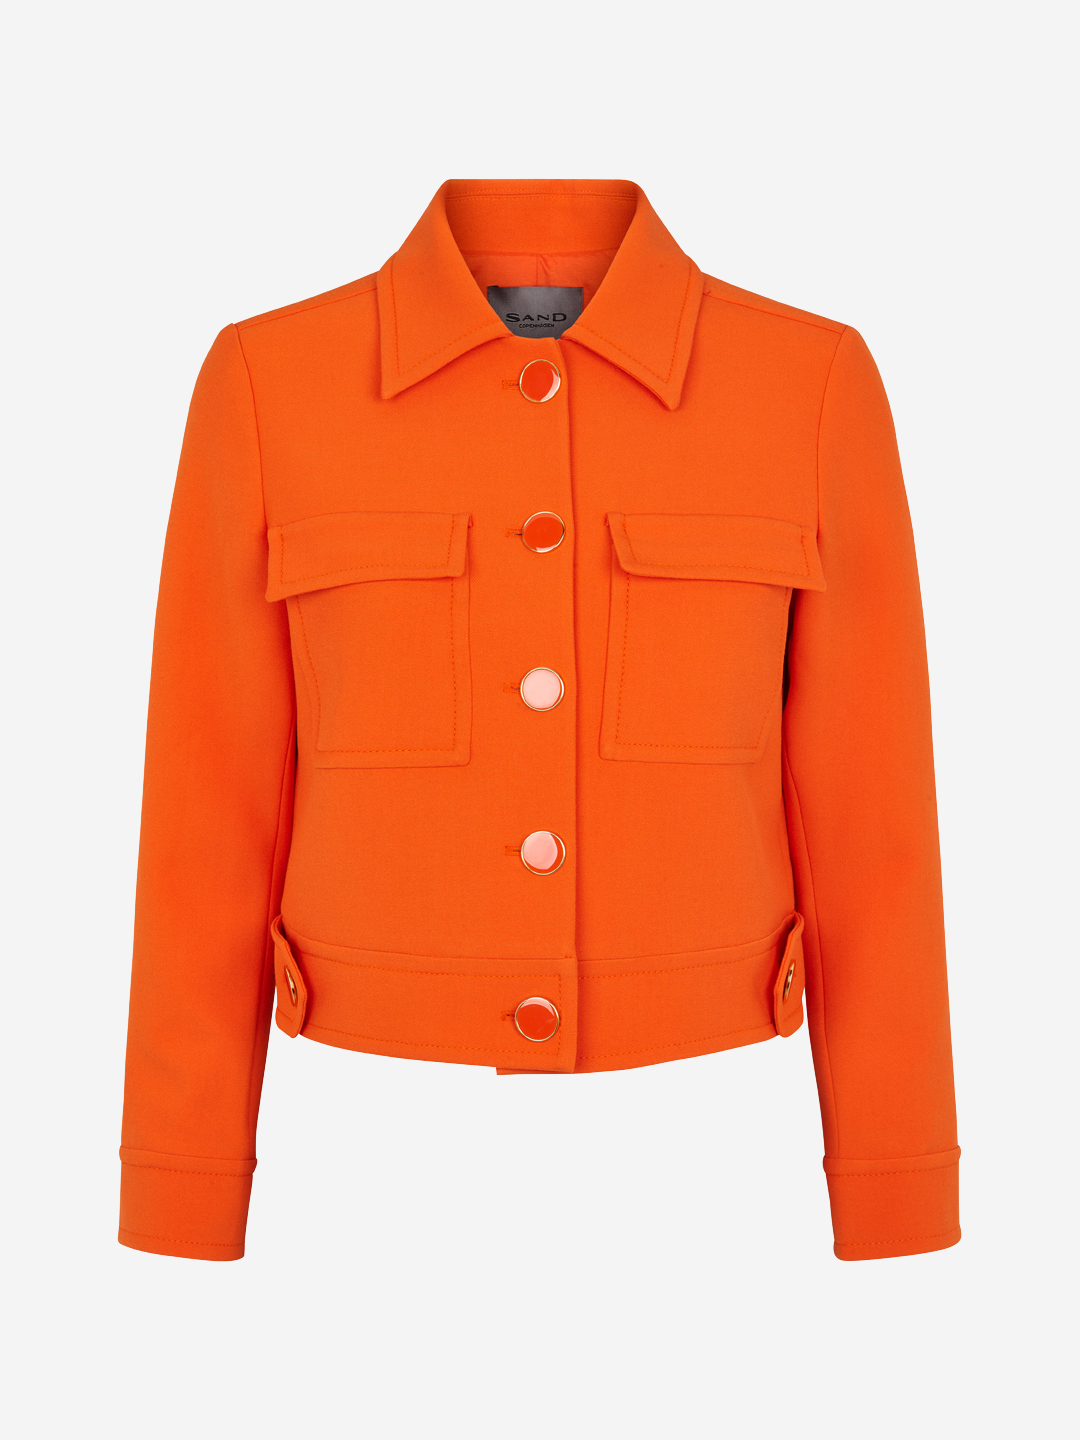 3596-Orange-Kaela-Jacket.jpg